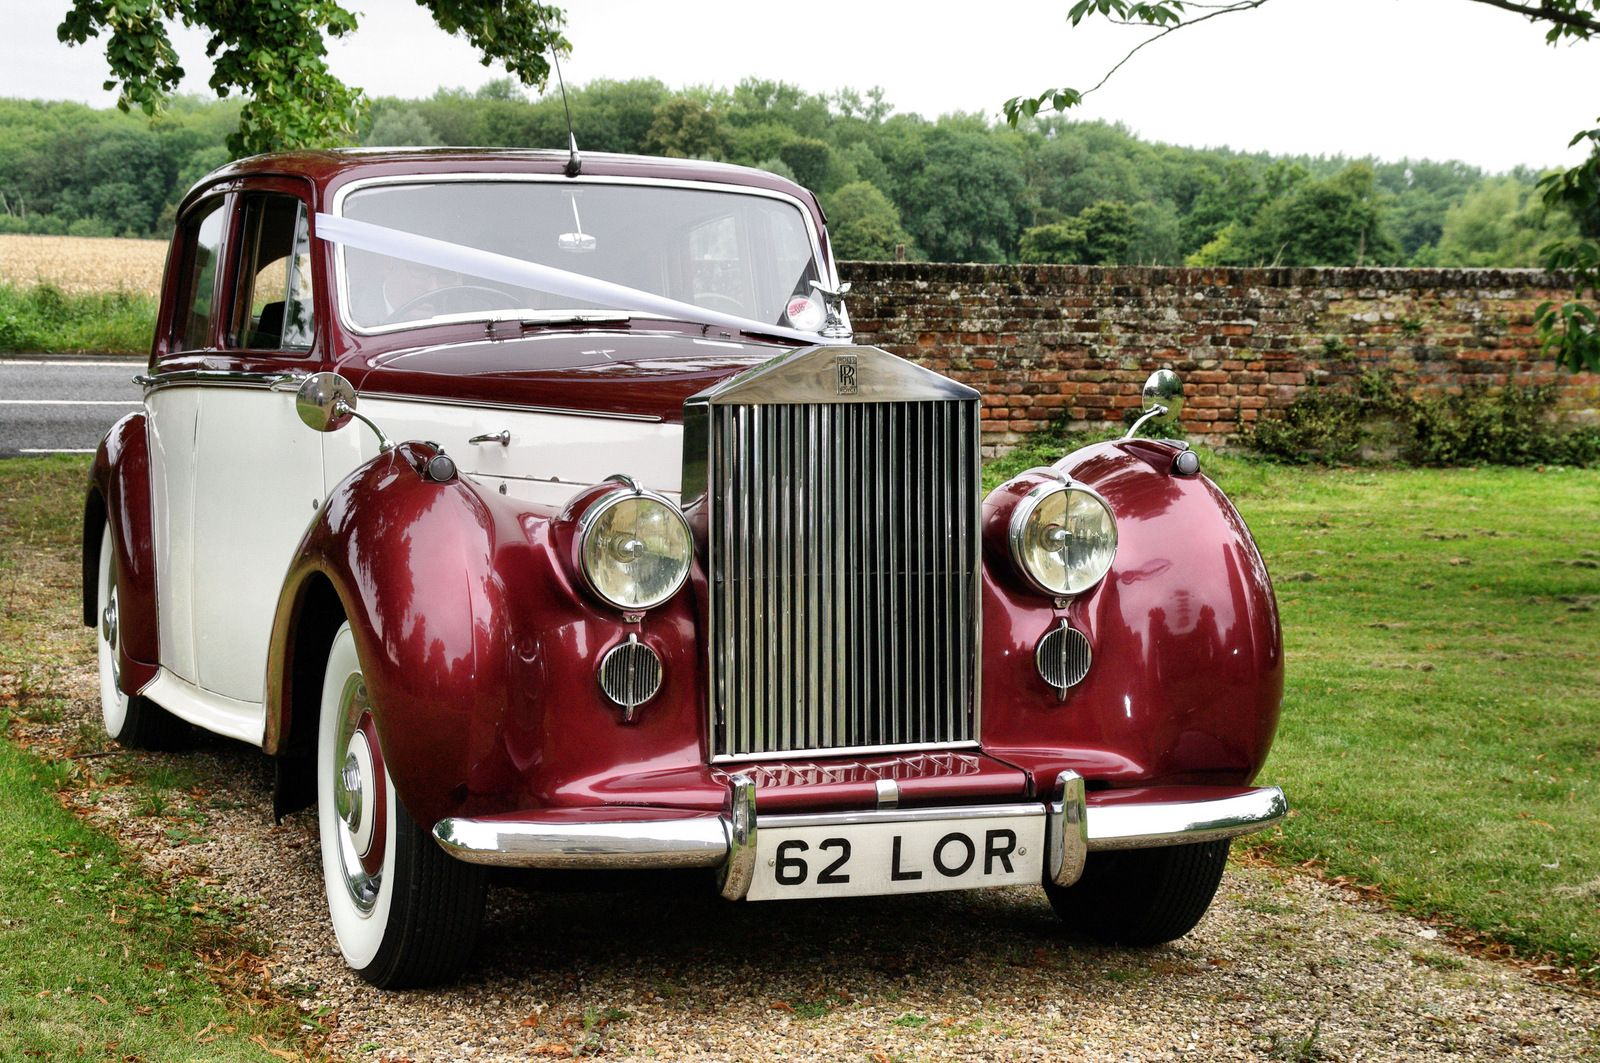 This Rolls Royce was the first car produced after world war II and ...